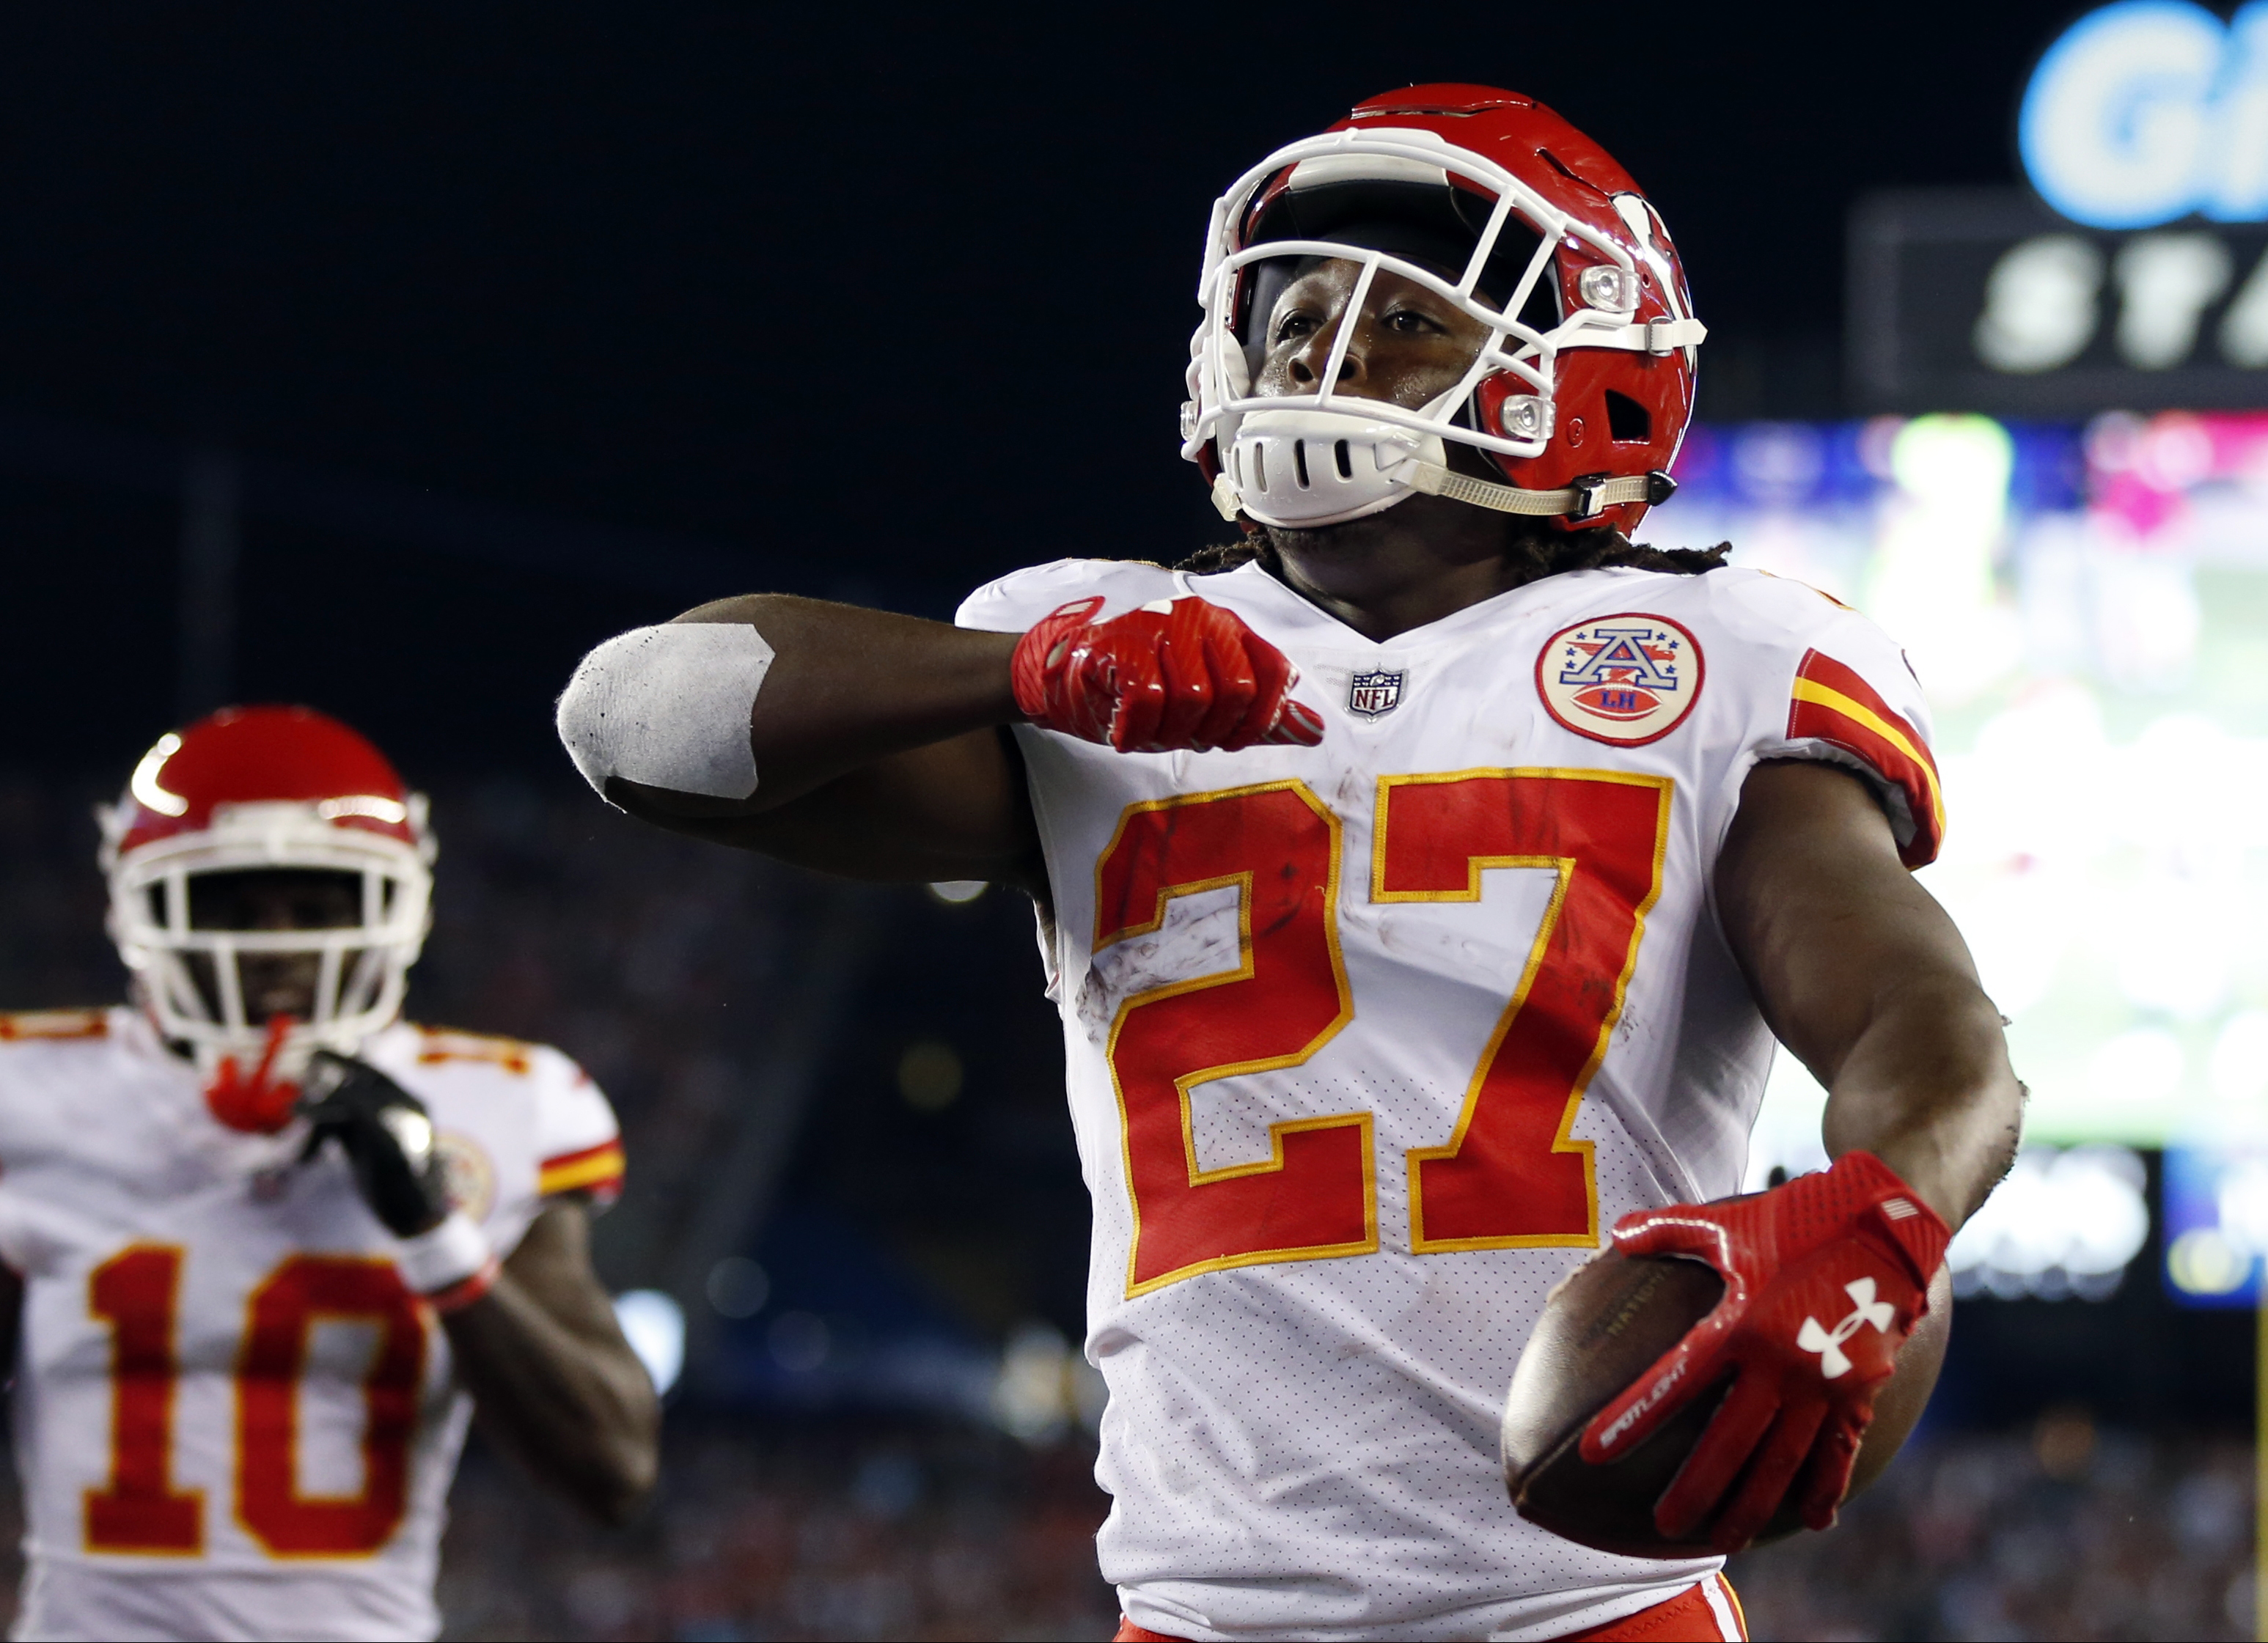 Kareem Hunt 2018 player profile game log season stats career stats recent news If you play fantasy sports get breaking news and immerse yourself in the ultimate